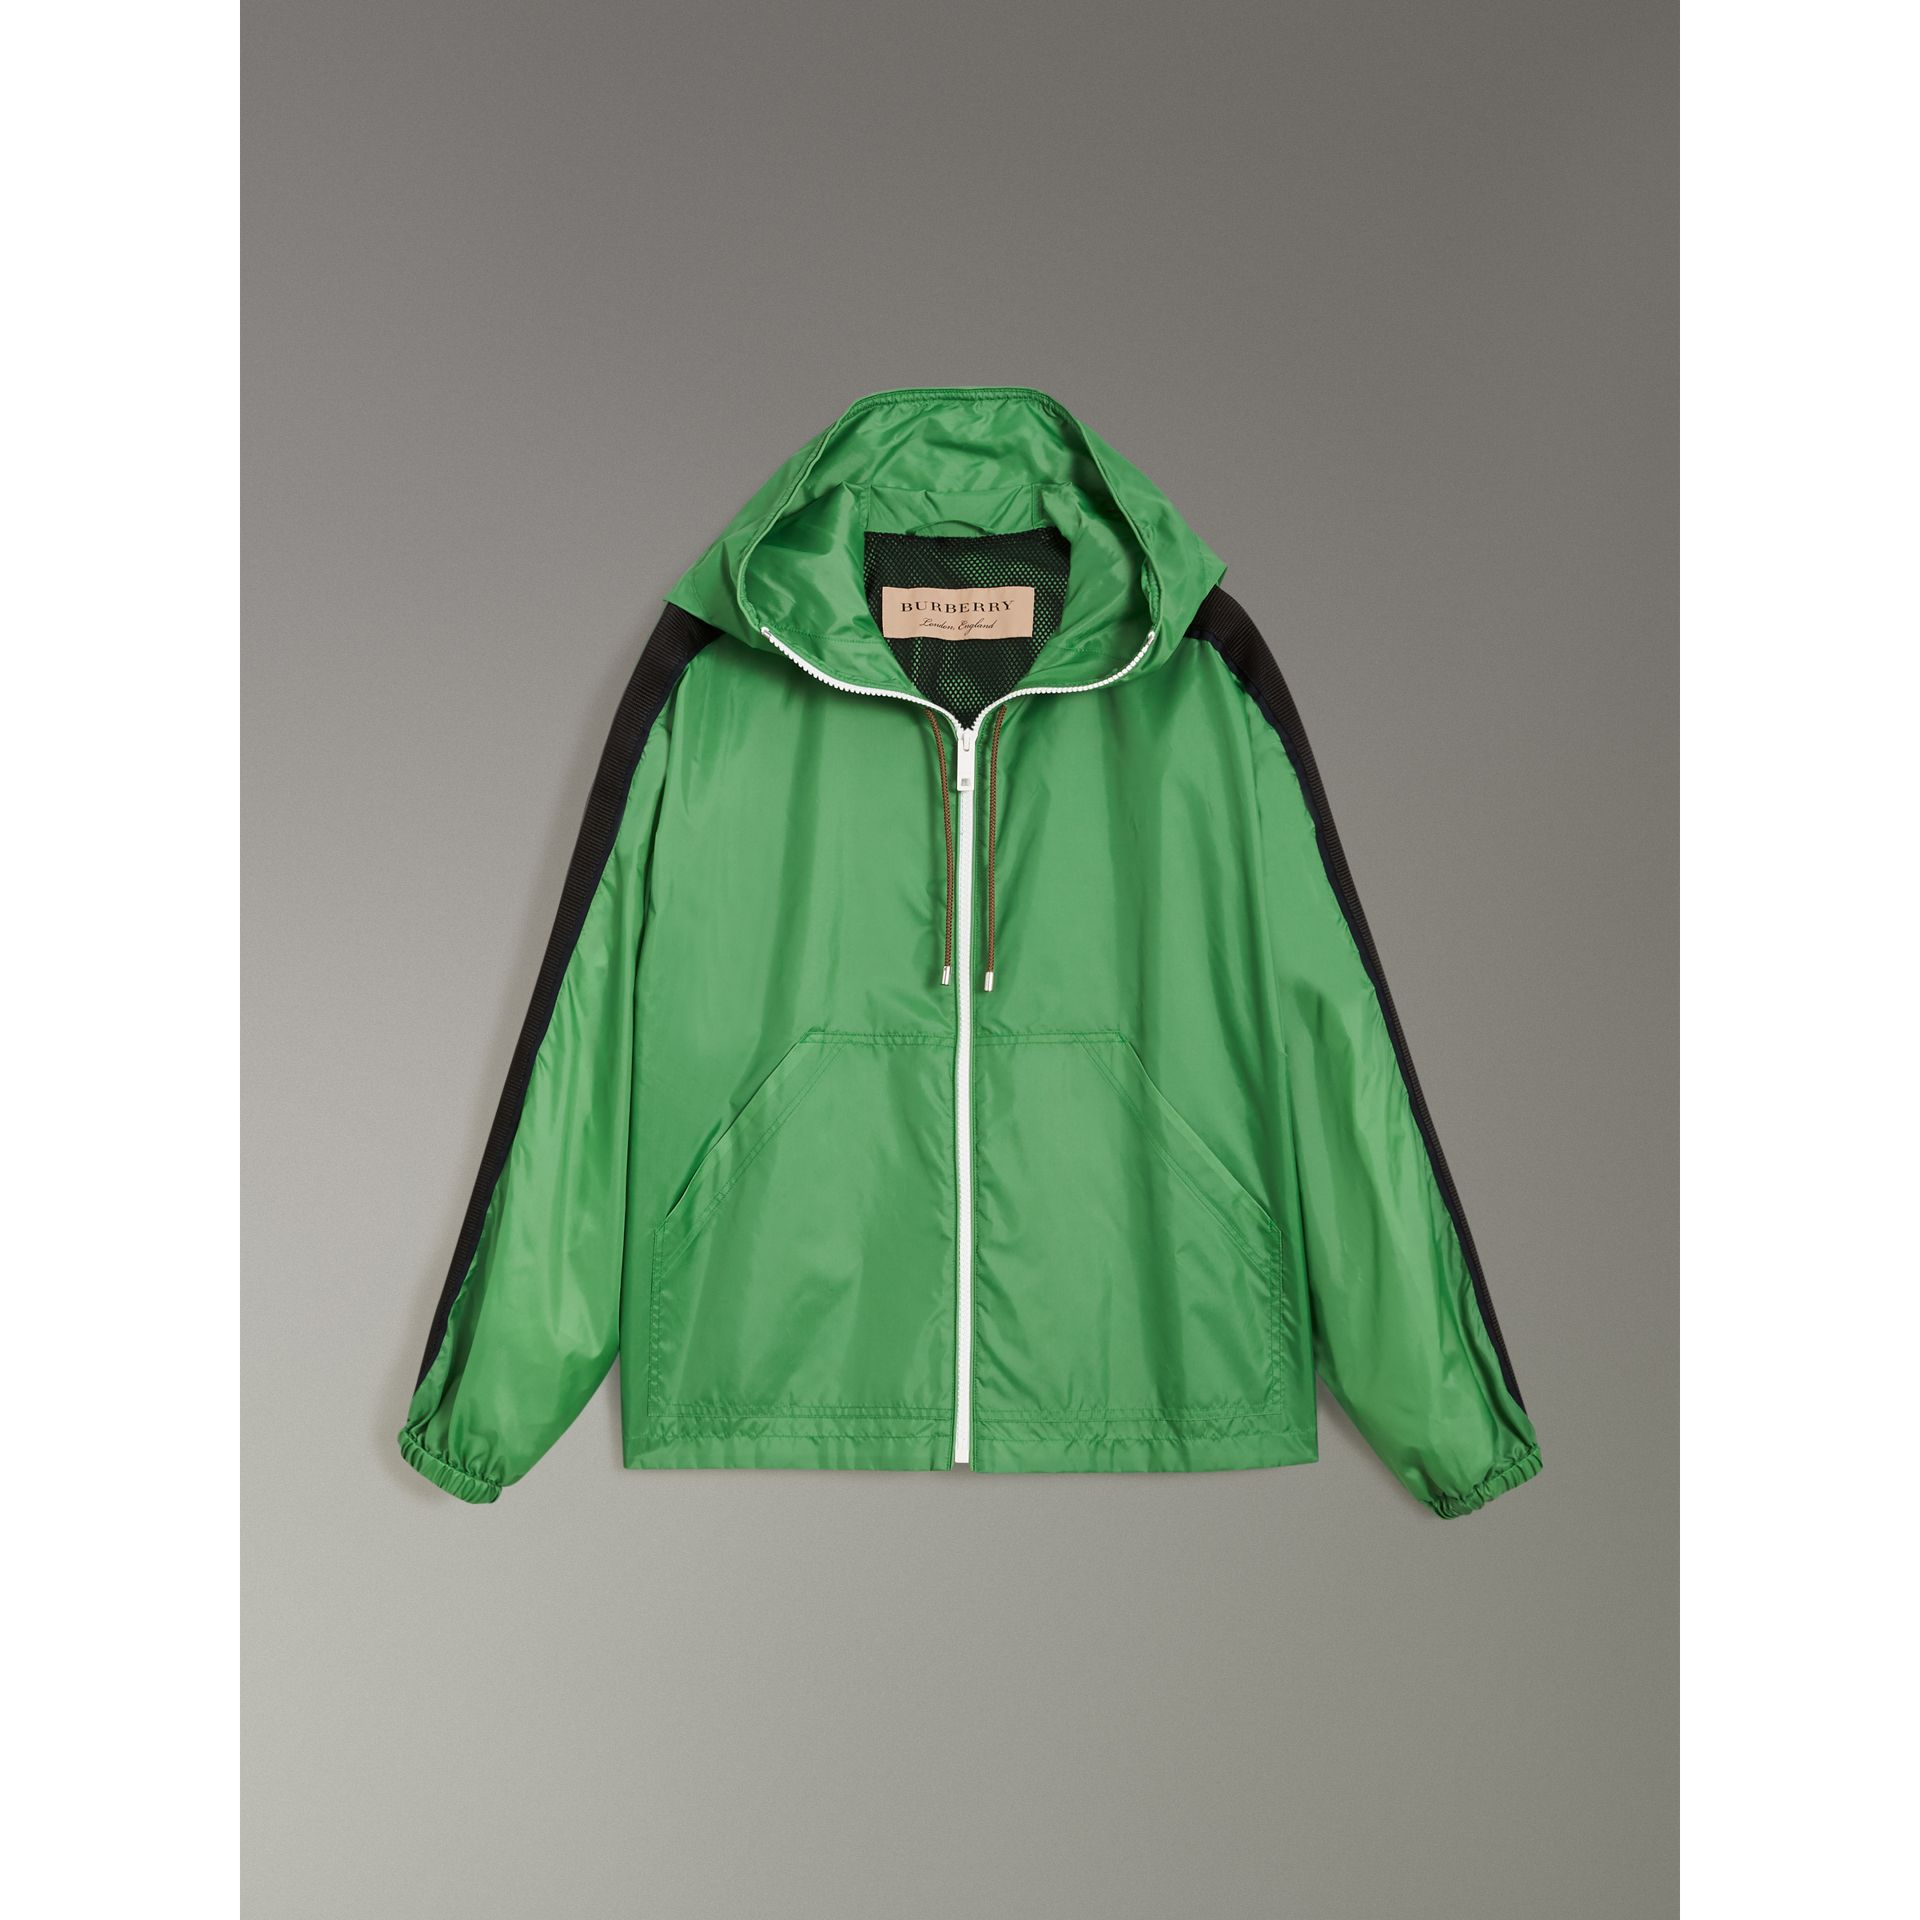 Stripe Detail Showerproof Hooded Jacket in Bright Pigment Green - Women | Burberry - gallery image 3